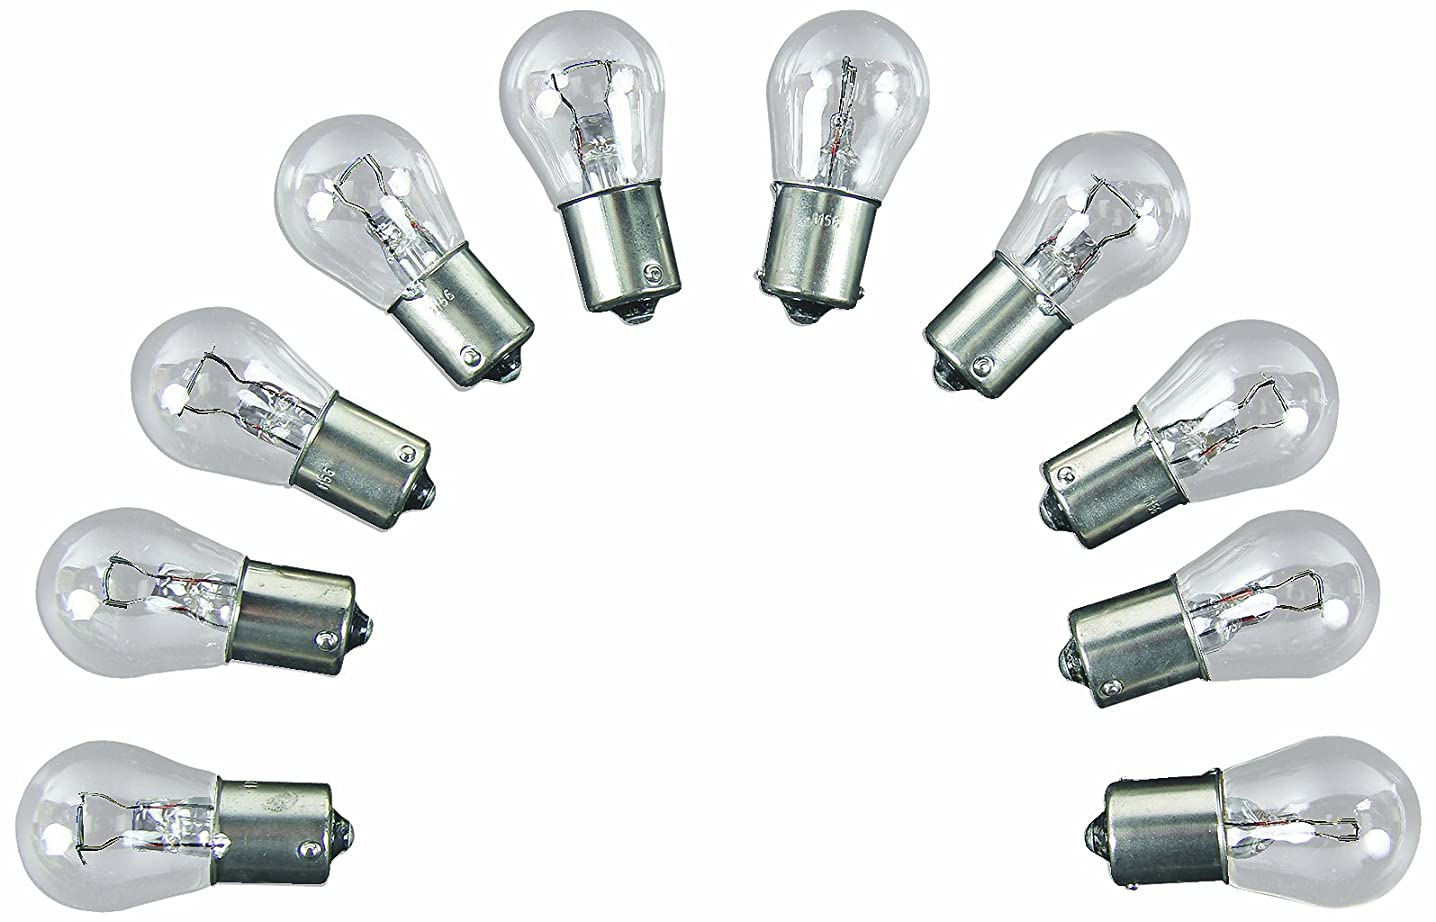 Camco 54802 Replacement 1156 Auto Back Up Light Bulb - Box of 10